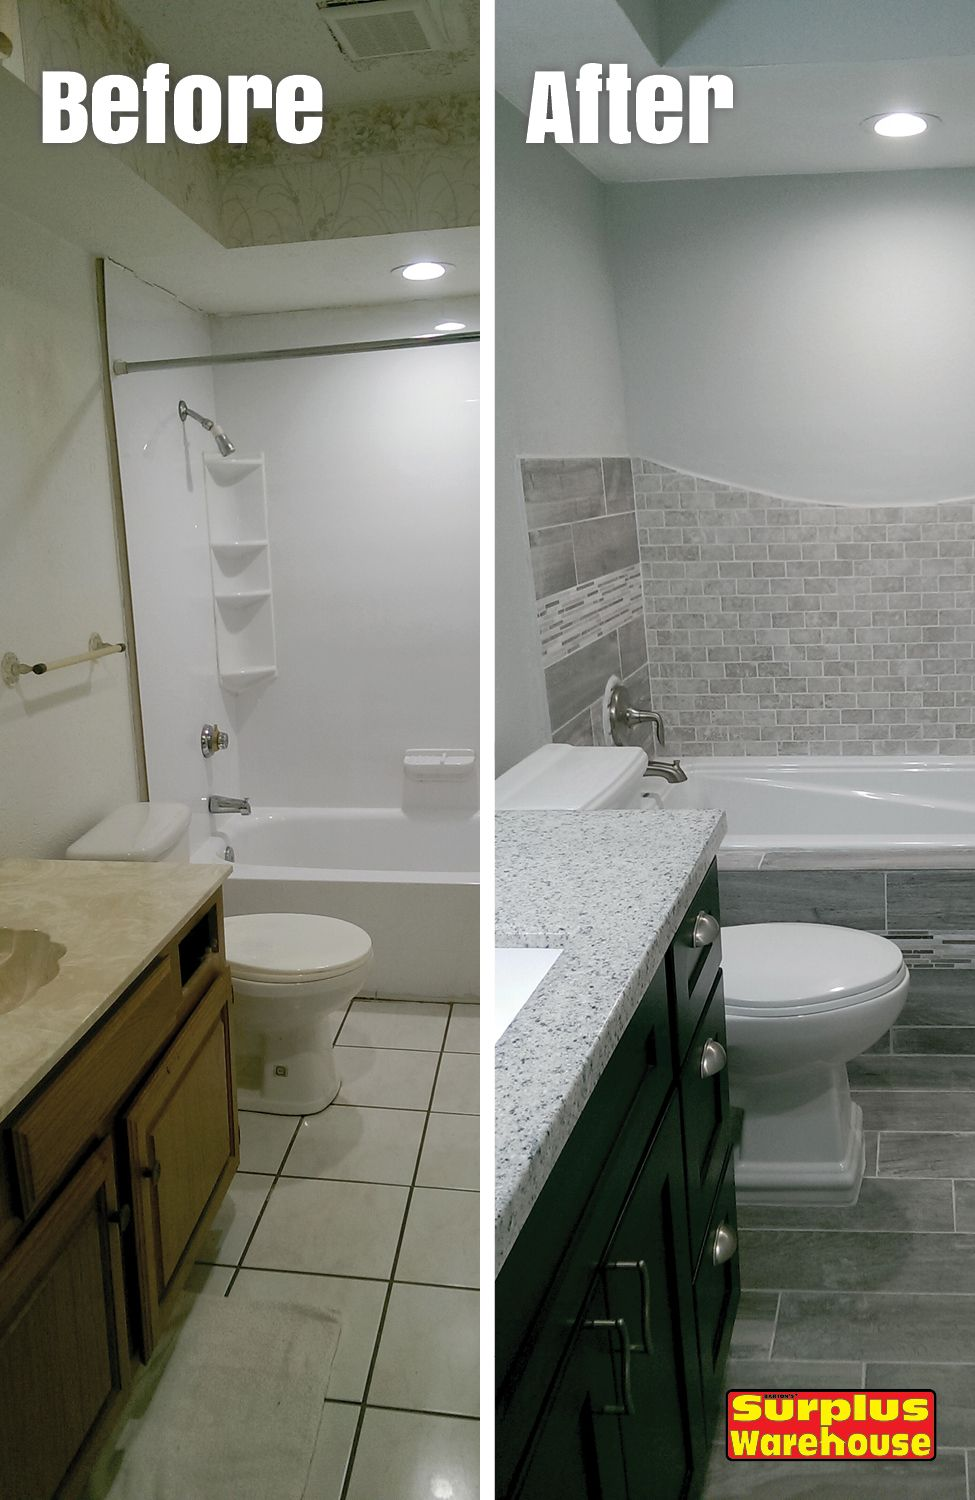 Bathroom Remodel By Dana M Mesquite Tx We Did A Through Surplus Warehouse And Couldn T Be More Pleased The Manager At